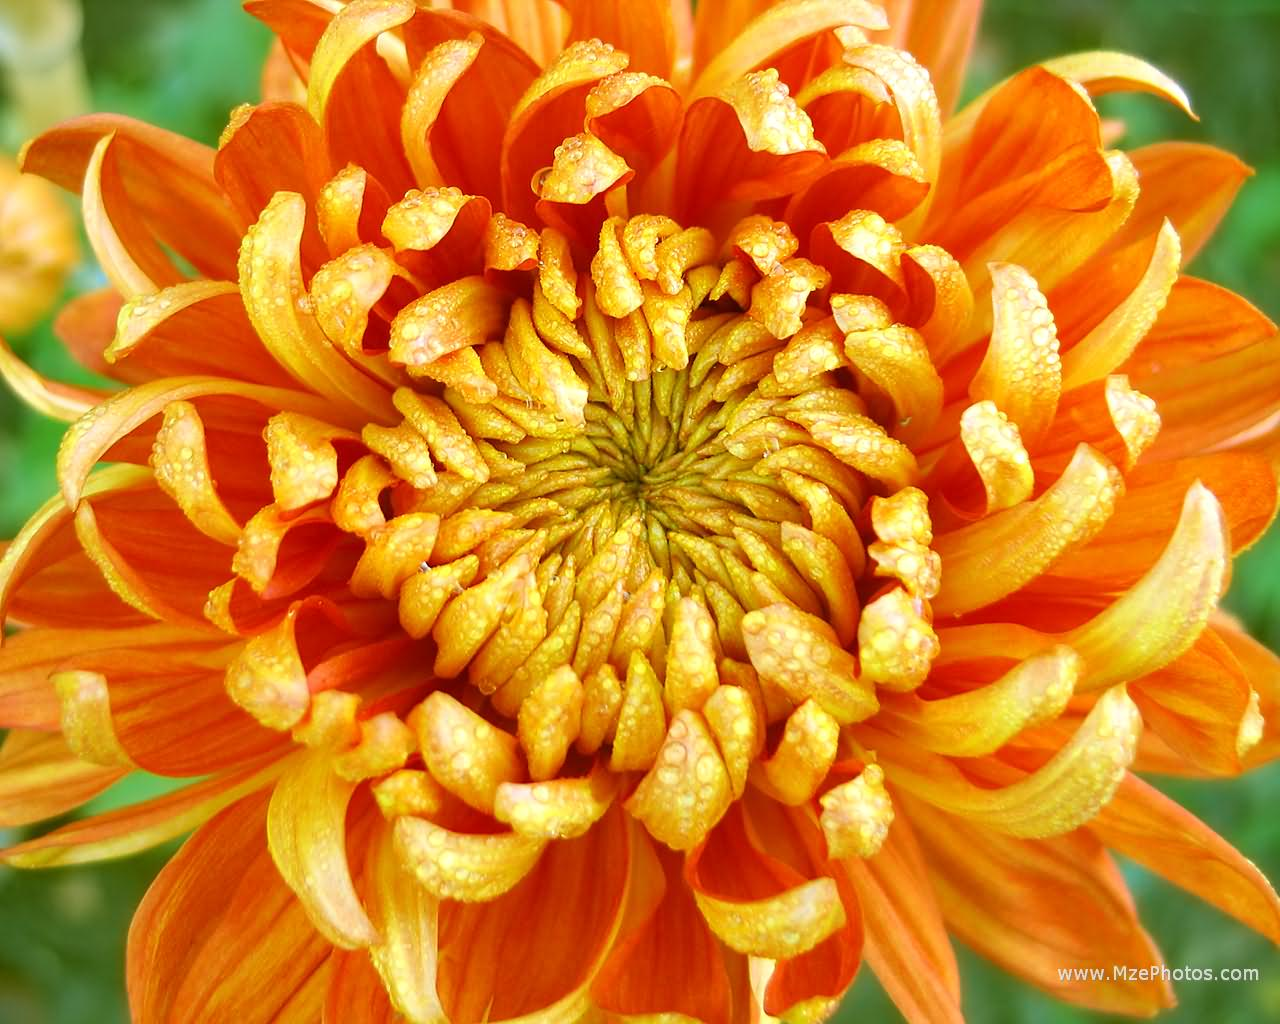 Pyrethrins are commonly used pesticides naturally derived from Chrysanthemum flowers. Potent and toxic. Pyrethroids are their synthetic relatives.